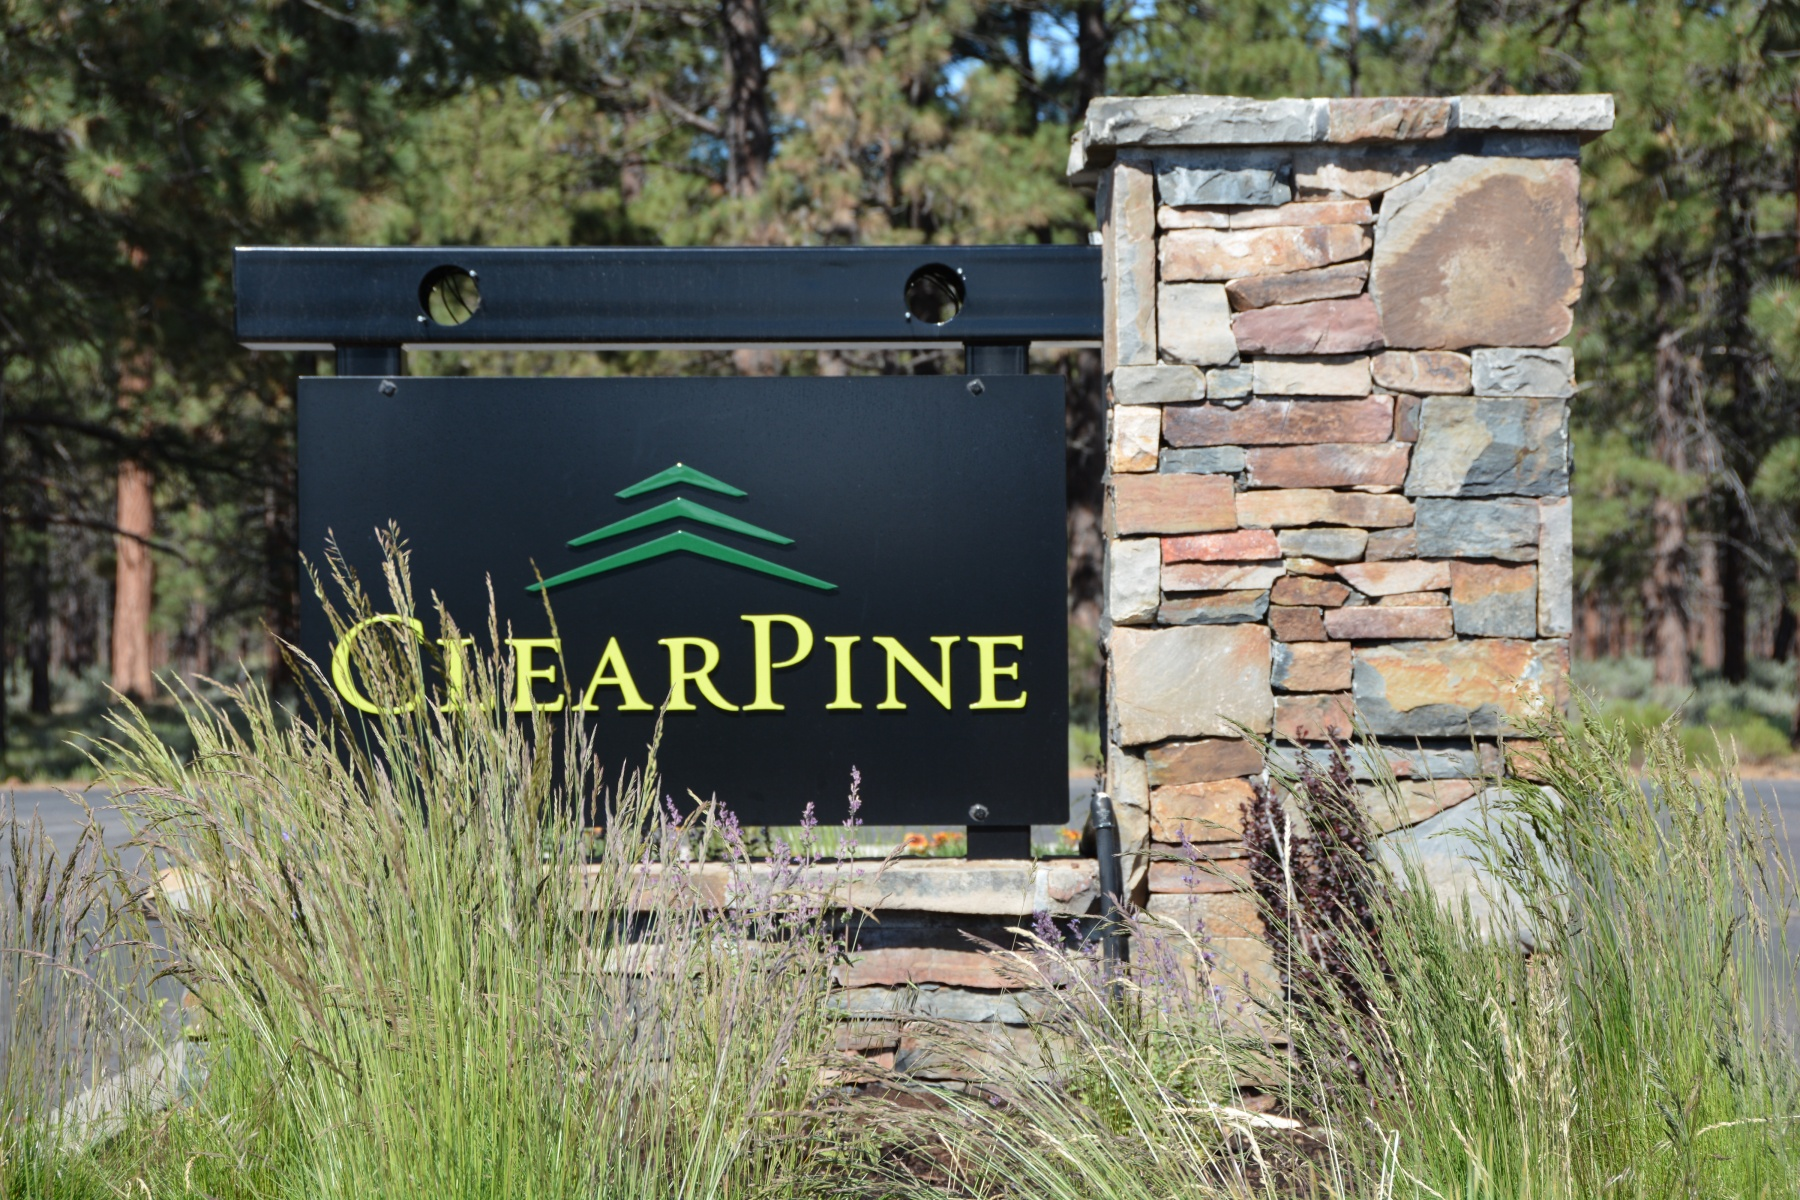 Land for Sale at Flat Build Ready Lot in ClearPine! 0 Heising Dr Lot 21 Sisters, Oregon, 97759 United States